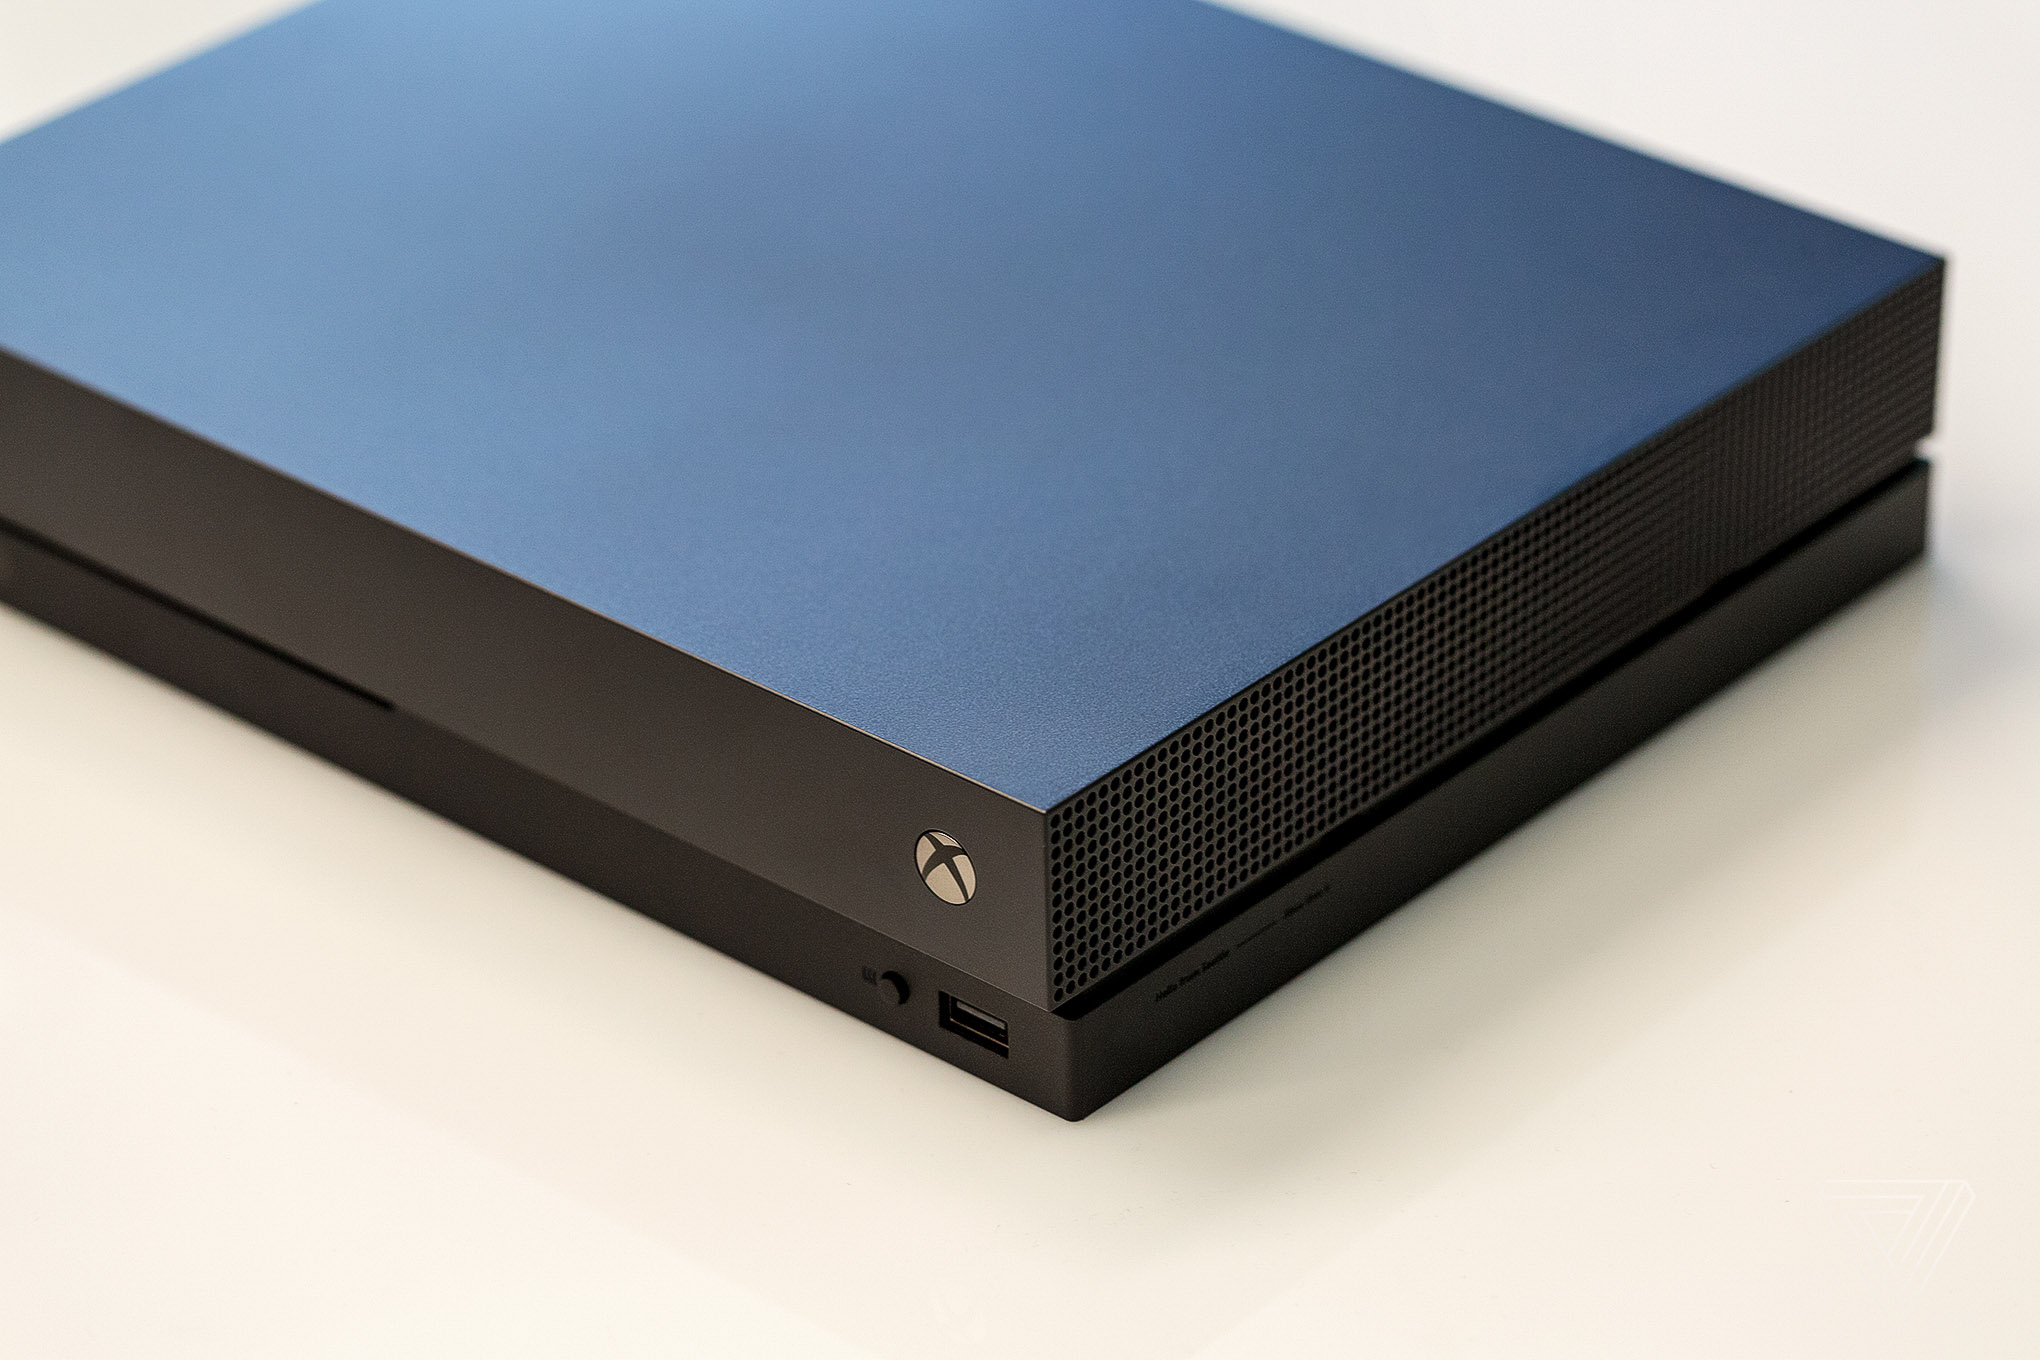 How Microsoft Built The Xbox One X Most Powerful Game Console This Type Of Junction Box Can Accommodate Up To Four Telephones Per Ever Verge